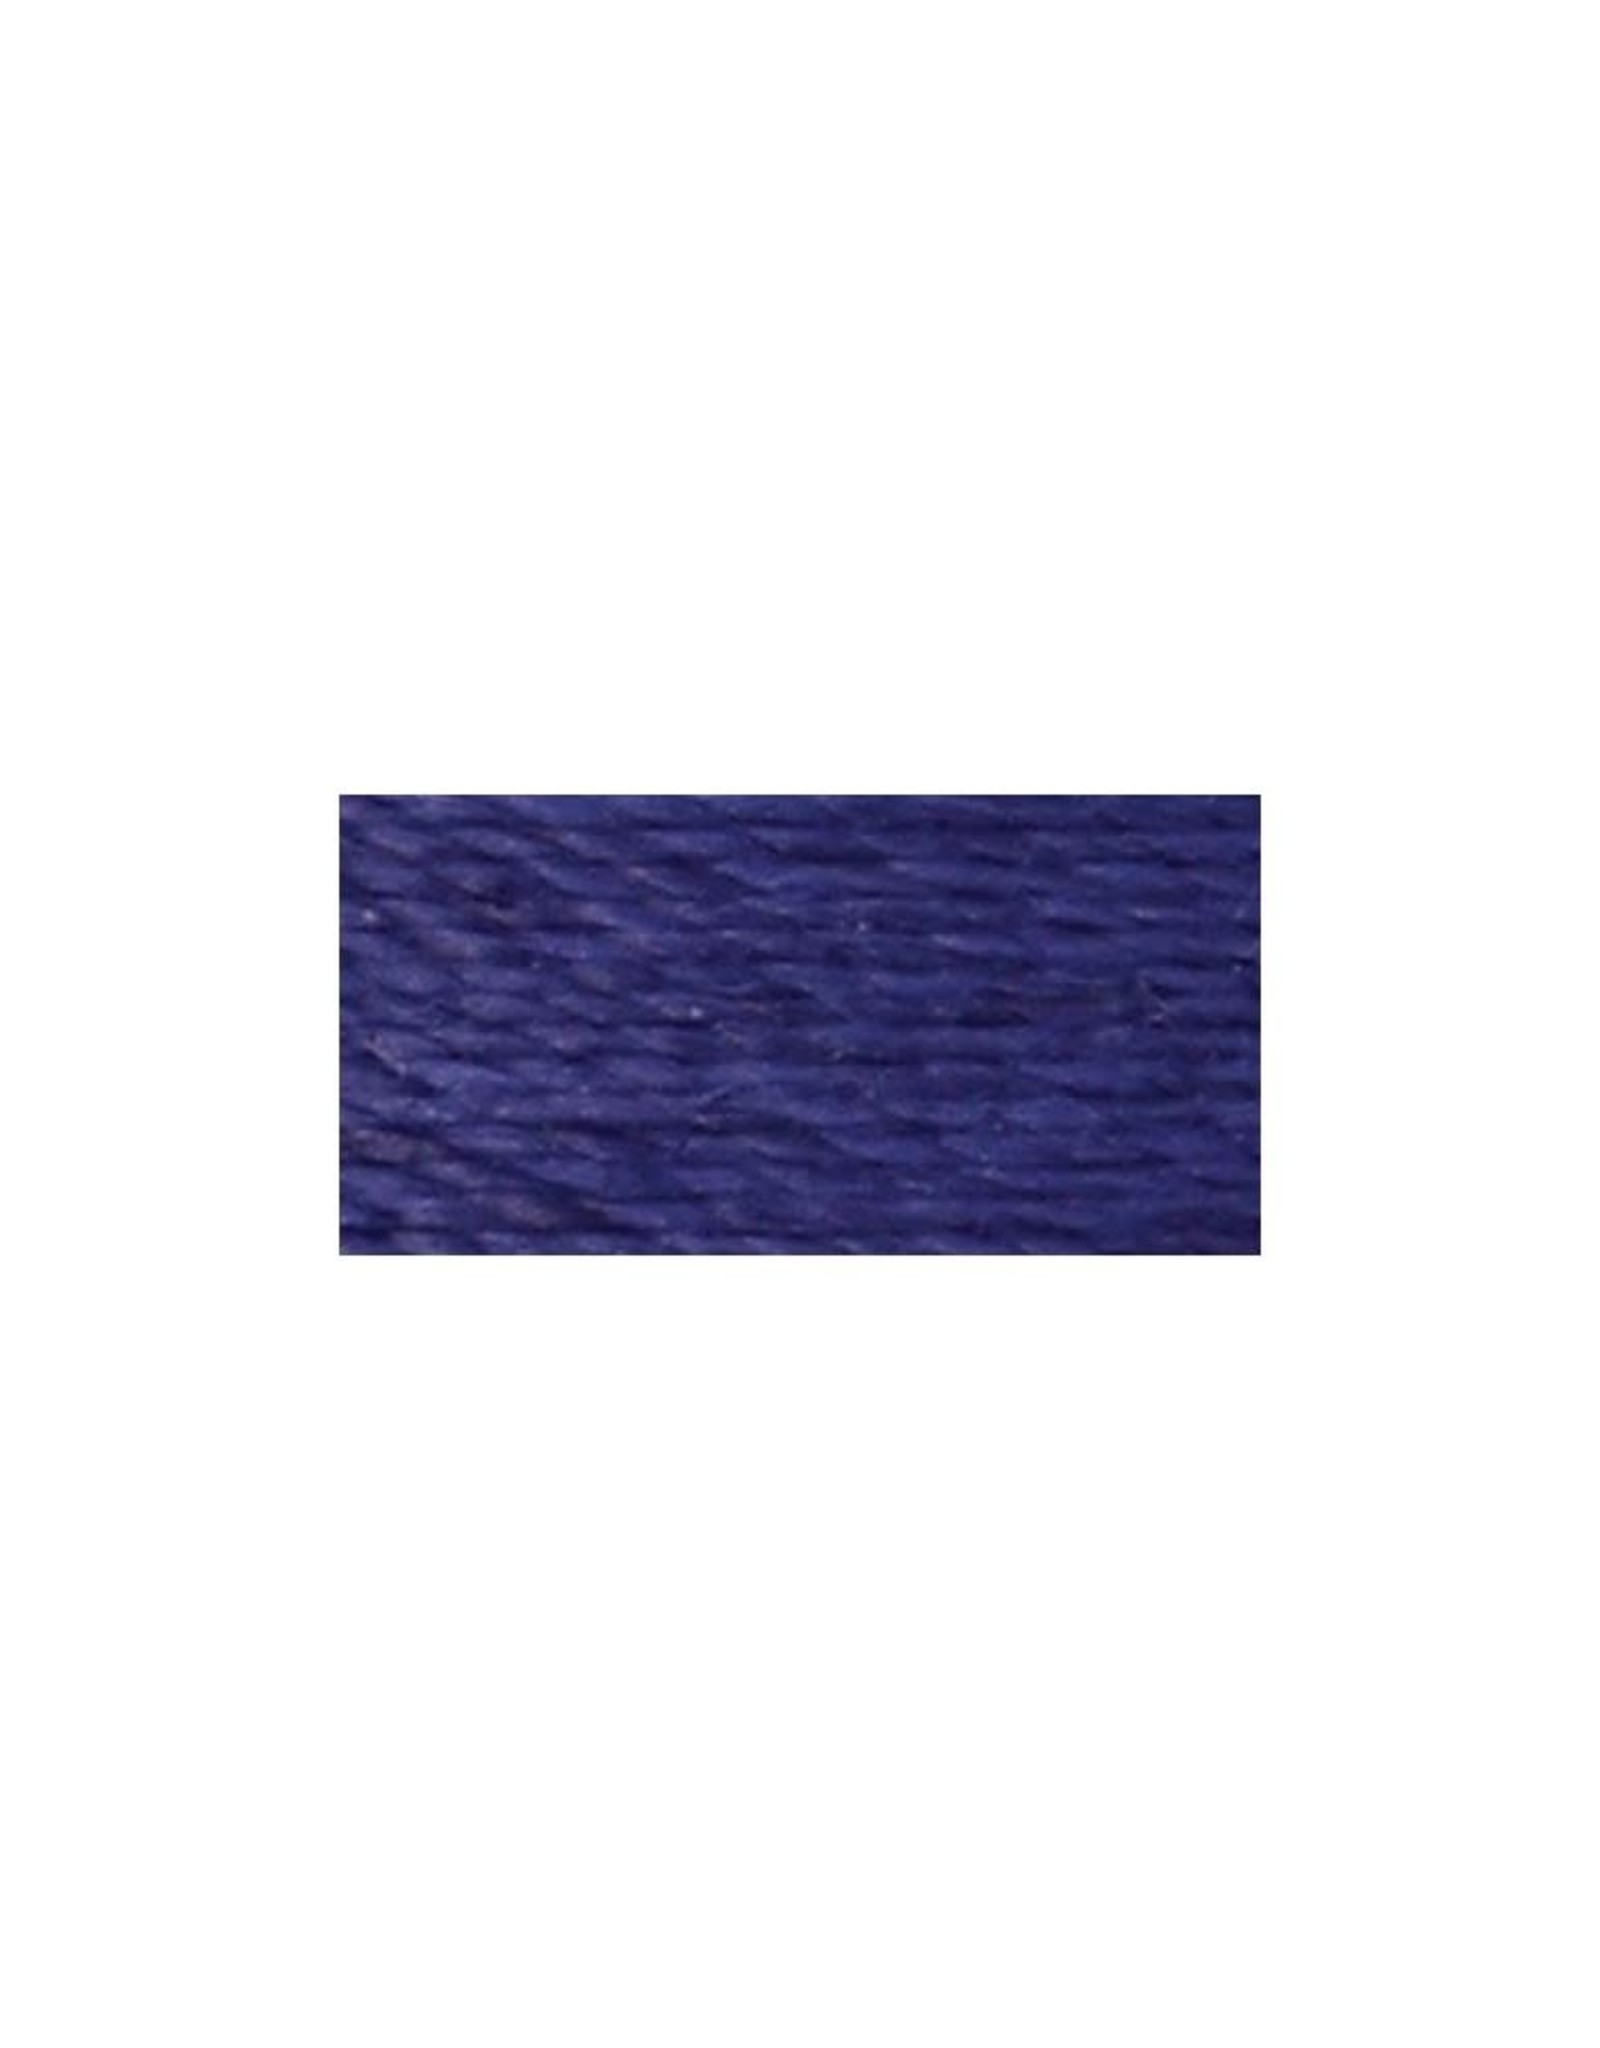 Dual Duty XP General Purpose Thread 250yd, Indigo